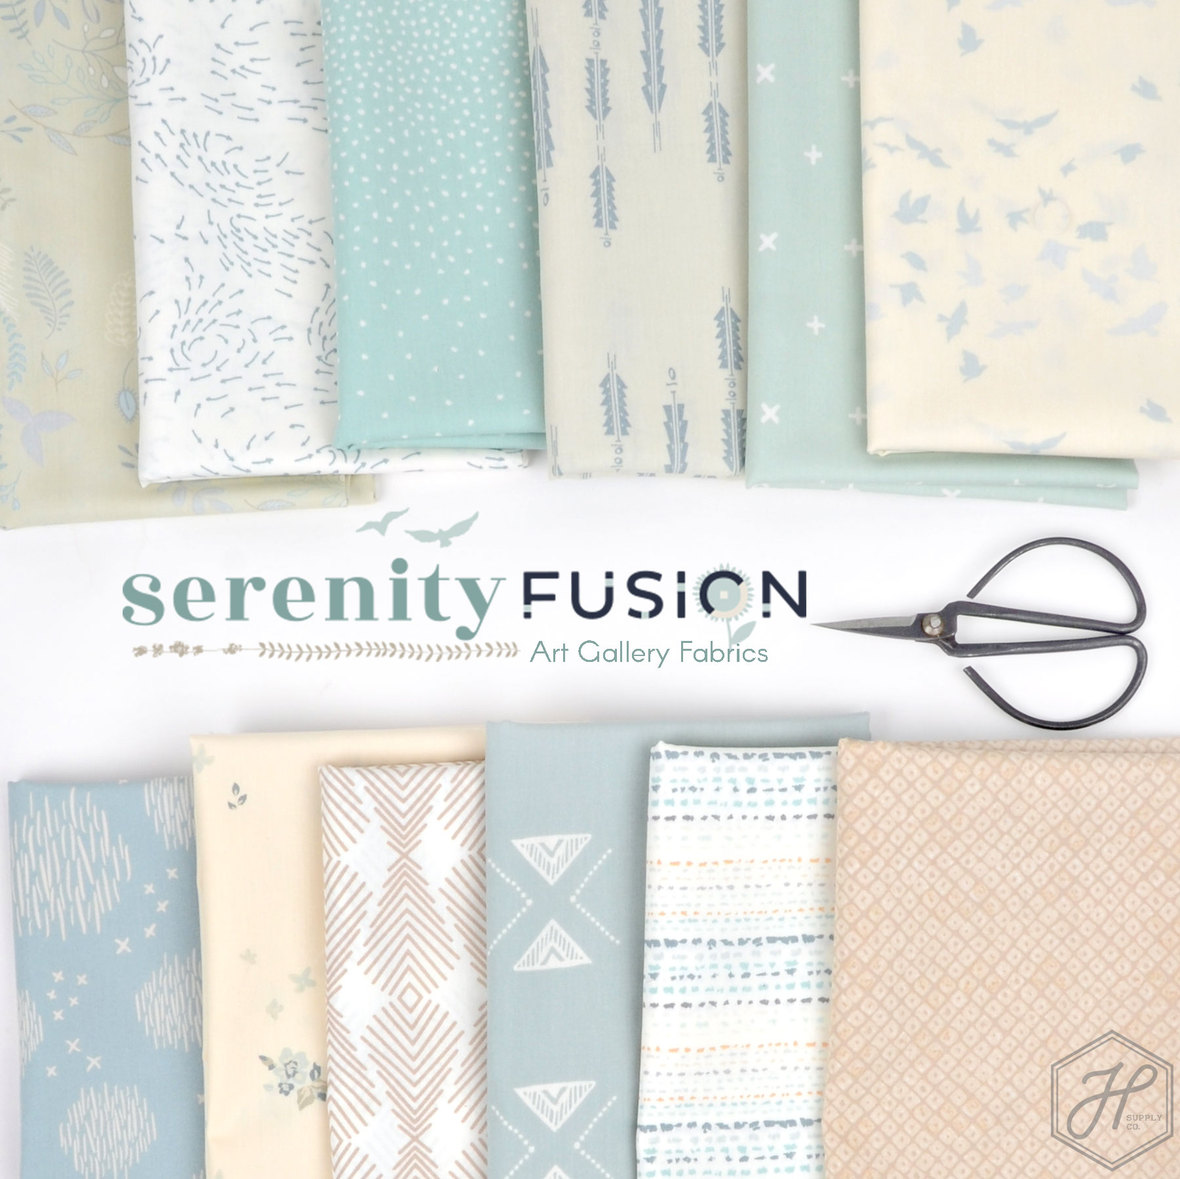 Serenity-Fusion-Fabric-Art-Gallery-at-Hawthorne-Supply-Co